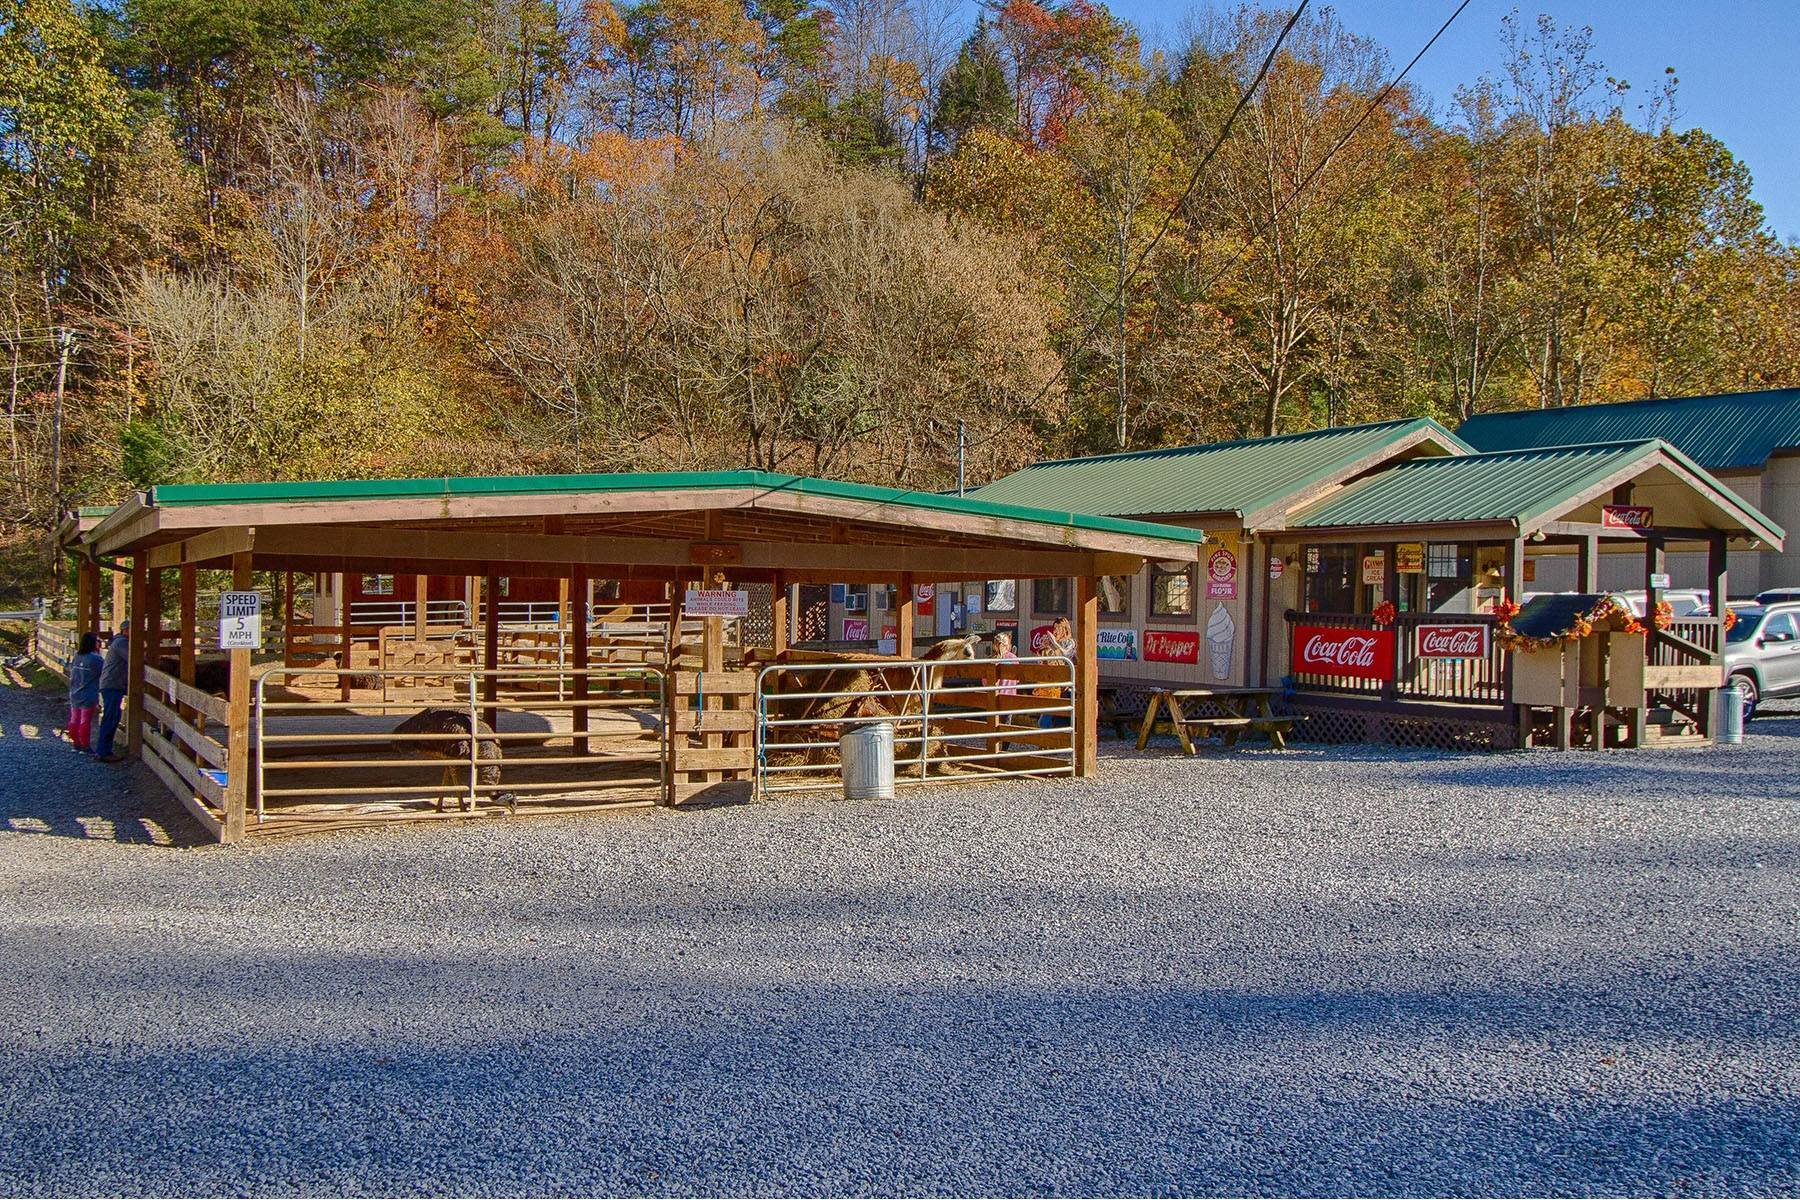 Commercial for Sale at Big Rock Dude Ranch 909 Little Cove Road Pigeon Forge, Tennessee 37863 United States